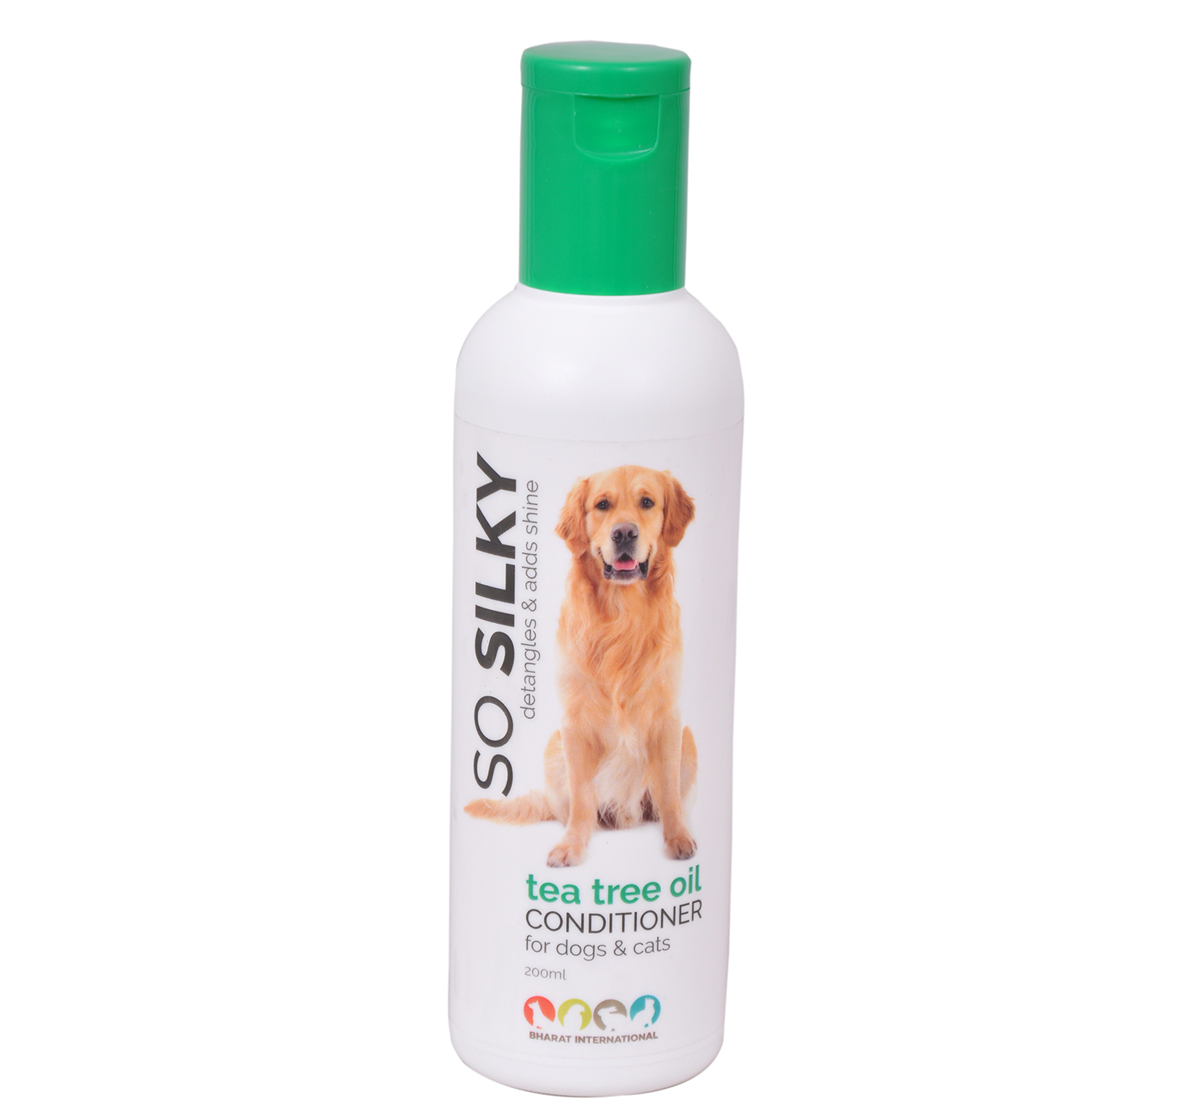 TeaTree Oil Conditioner For Dogs And Cats- 200 ml